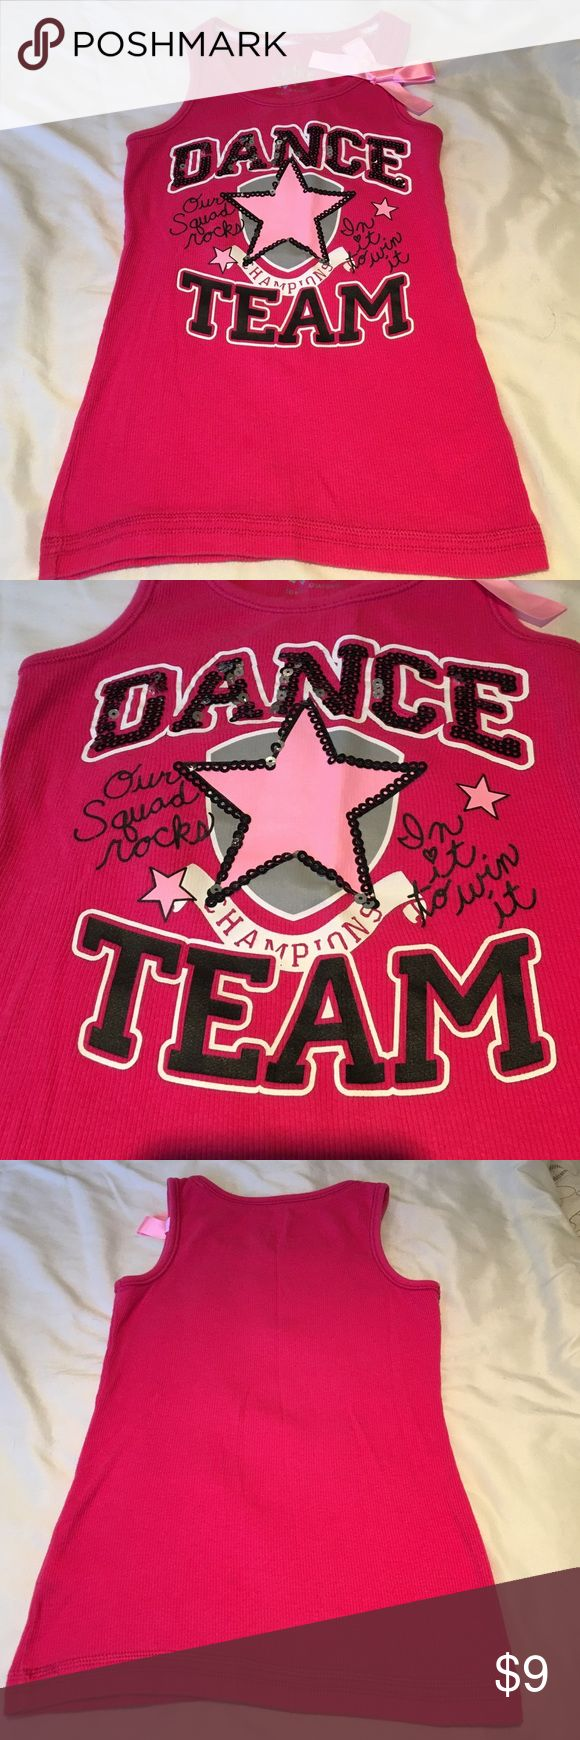 HPJUSTICE Girls Dance Tank Top Very cute Justice tank. Gently worn in very good condition.  No rips, tears or stains. Dance and Star logo has black sequins.  Light pink bow on upper left. 96% Cotton, 4% Spandex. Girls Size 7. Justice Shirts & Tops Tank Tops